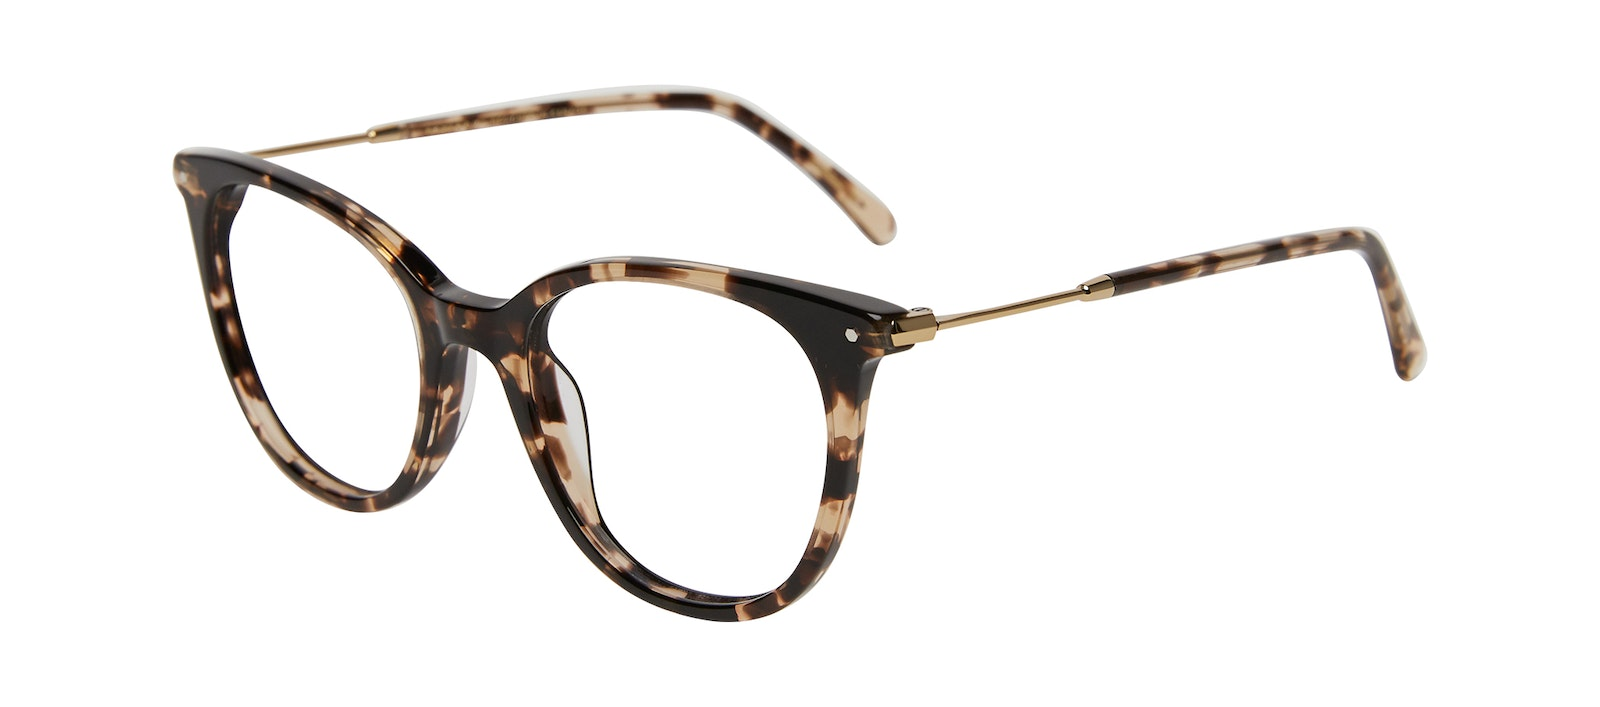 Affordable Fashion Glasses Square Eyeglasses Women Wordly Leopard Tilt